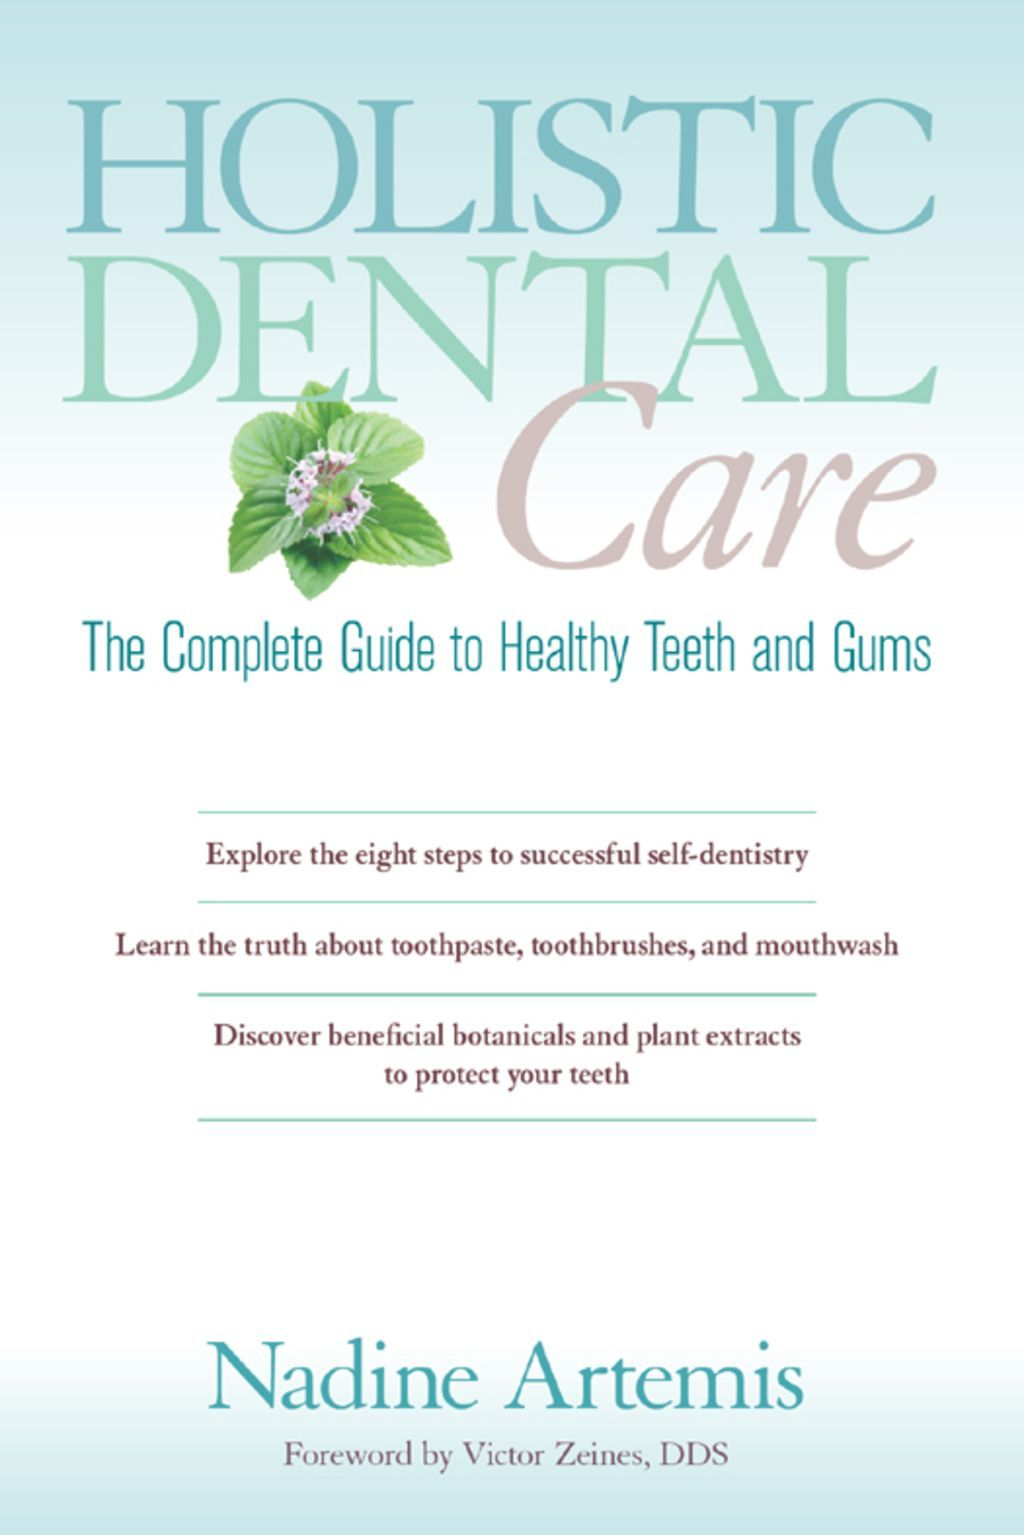 Holistic Dental Care (eBook) #DiyBeautyTips #dentalcare